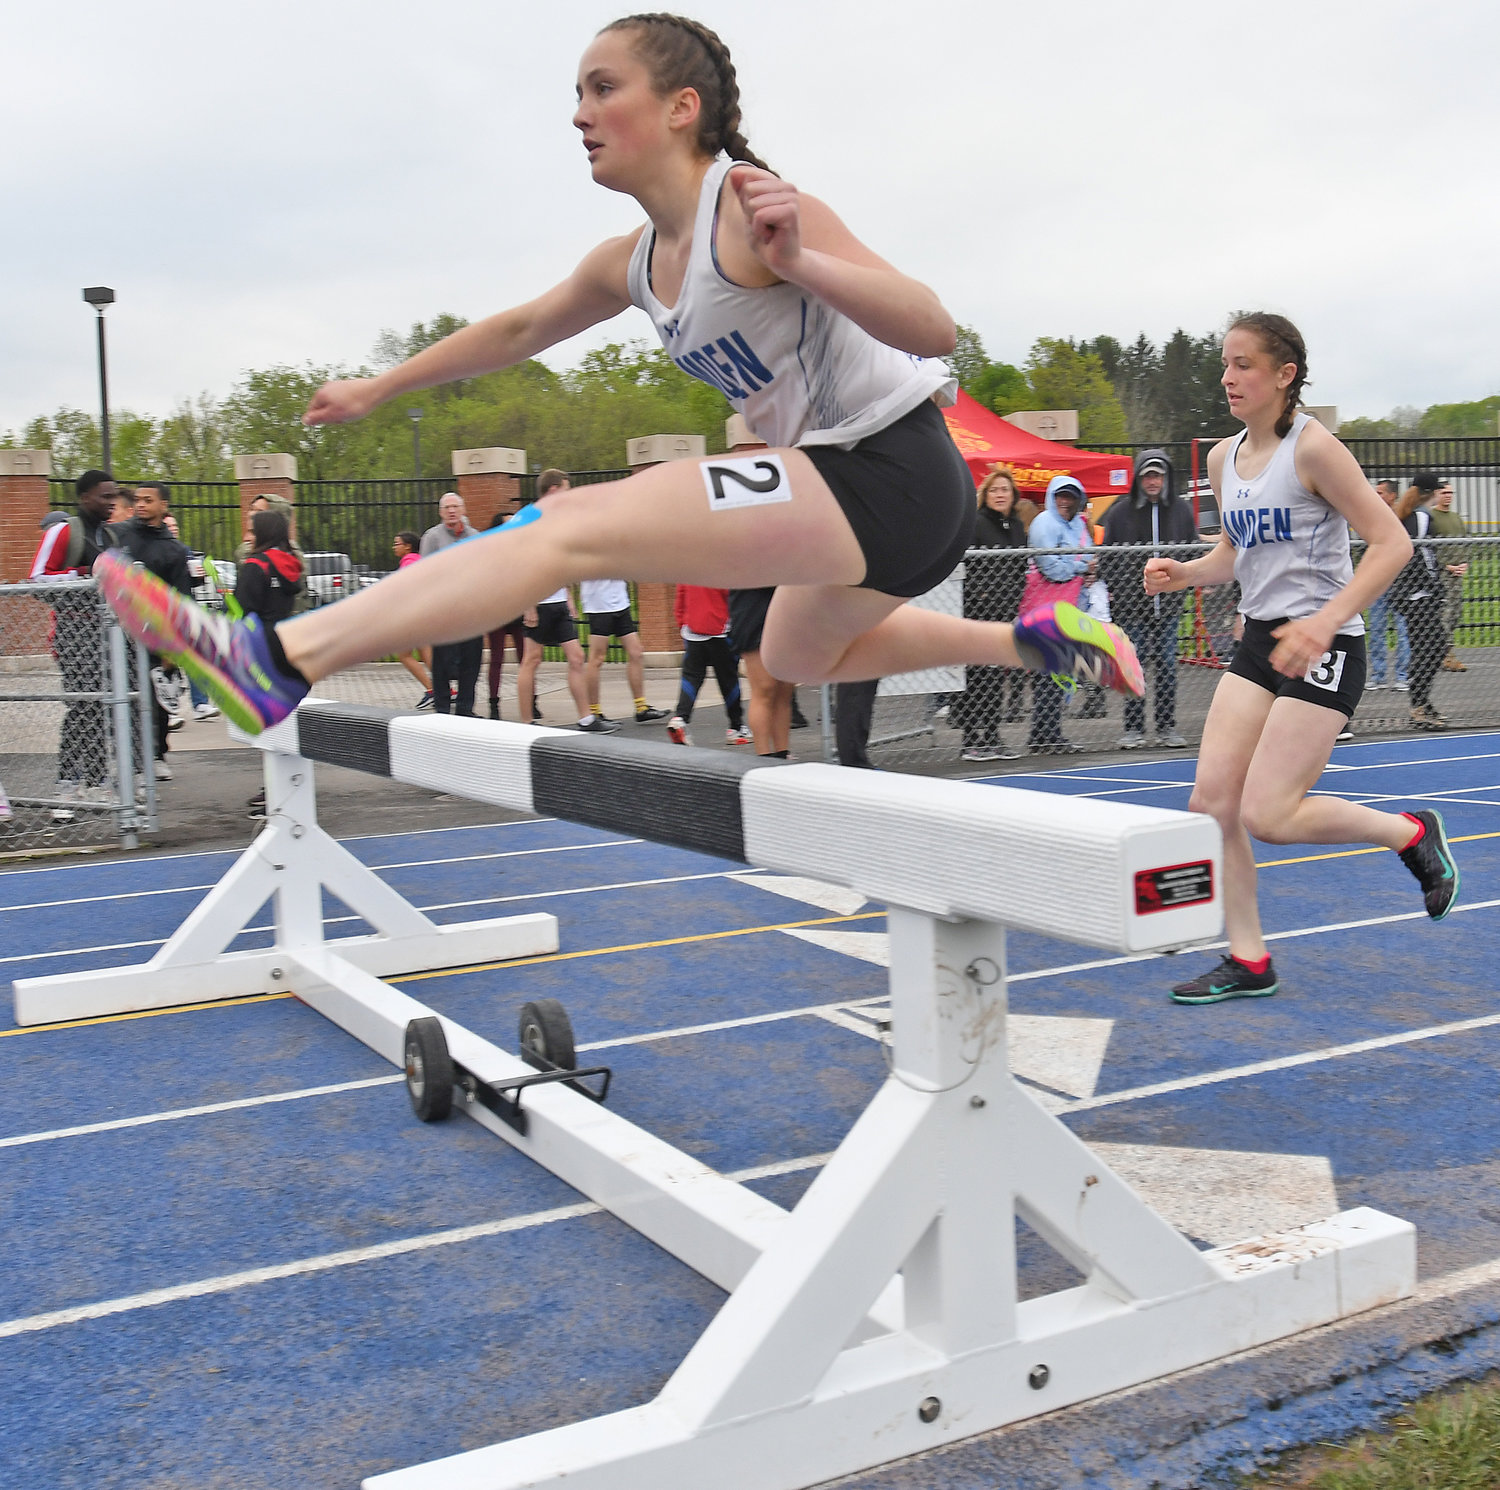 CAMDEN RACERS — Catherine Seidl, left, and Morgan Lucason of Camden compete in the steeplechase at the Oneida Invitational Friday. Seidl and Lucason, both juniors, finished second and third, respectively.